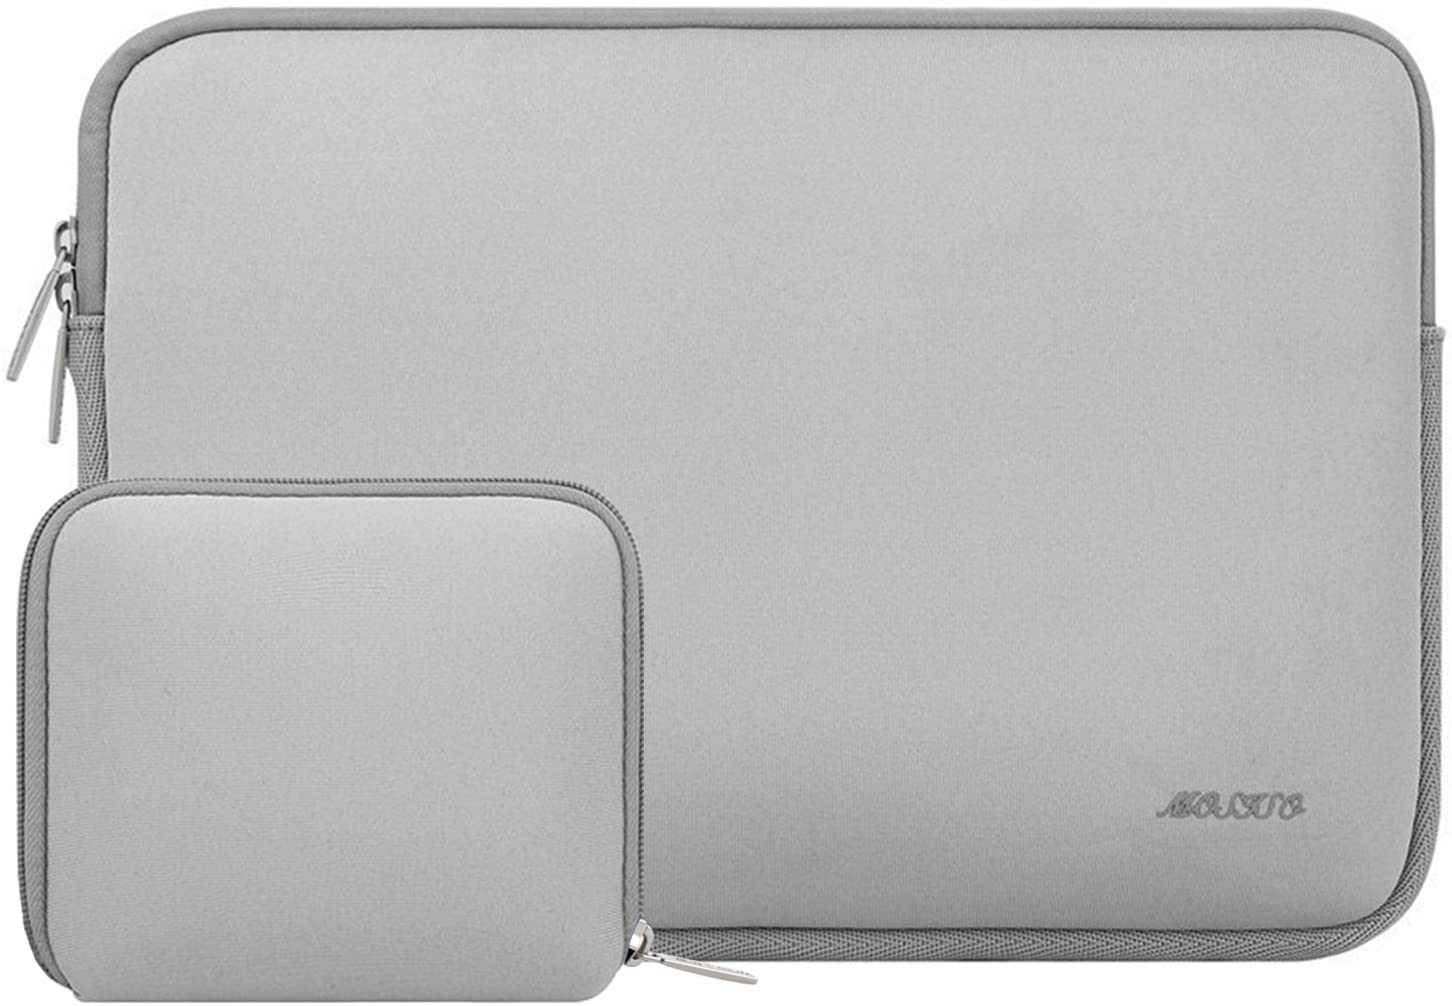 MOSISO Laptop Sleeve Compatible with 13-13.3 inch MacBook Pro, MacBook Air, Notebook Computer, Water Repellent Neoprene Bag with Small Case, Light Gray